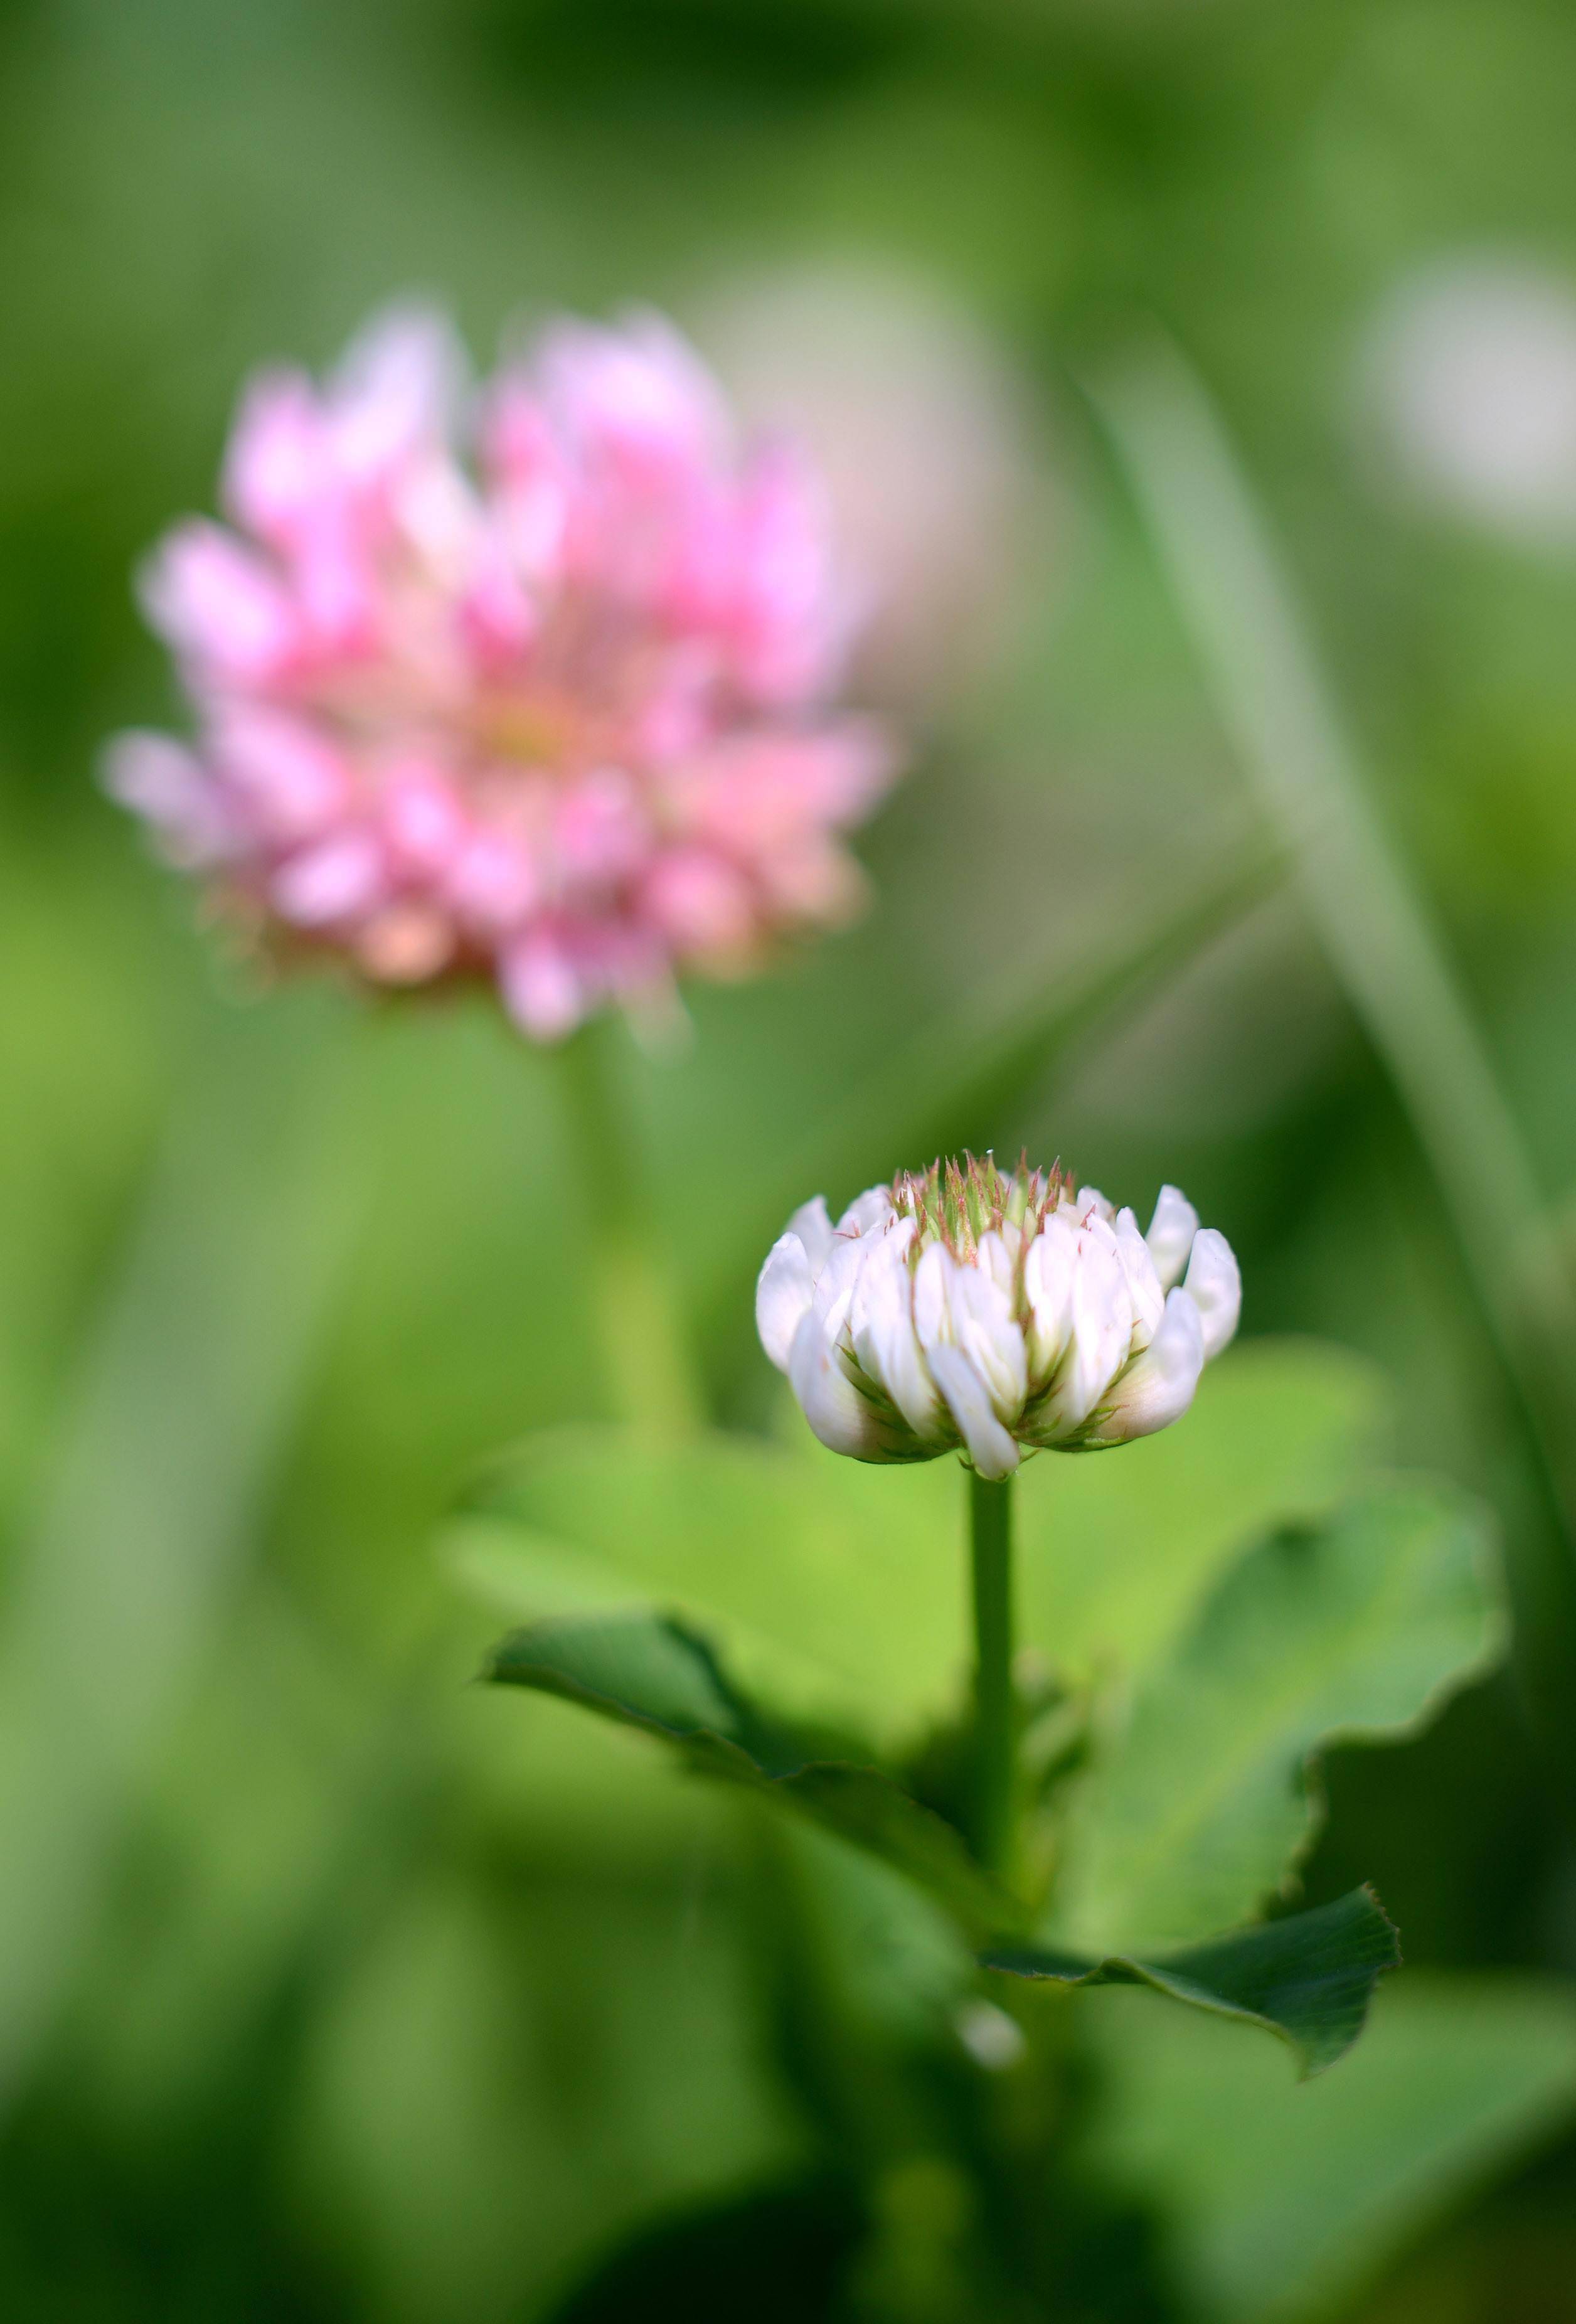 White clover, sometimes called Dutch clover, is shown with red clover in the background at LeRoy Oakes Forest Preserve in St. Charles. Prairies and meadows contain a variety of clovers.